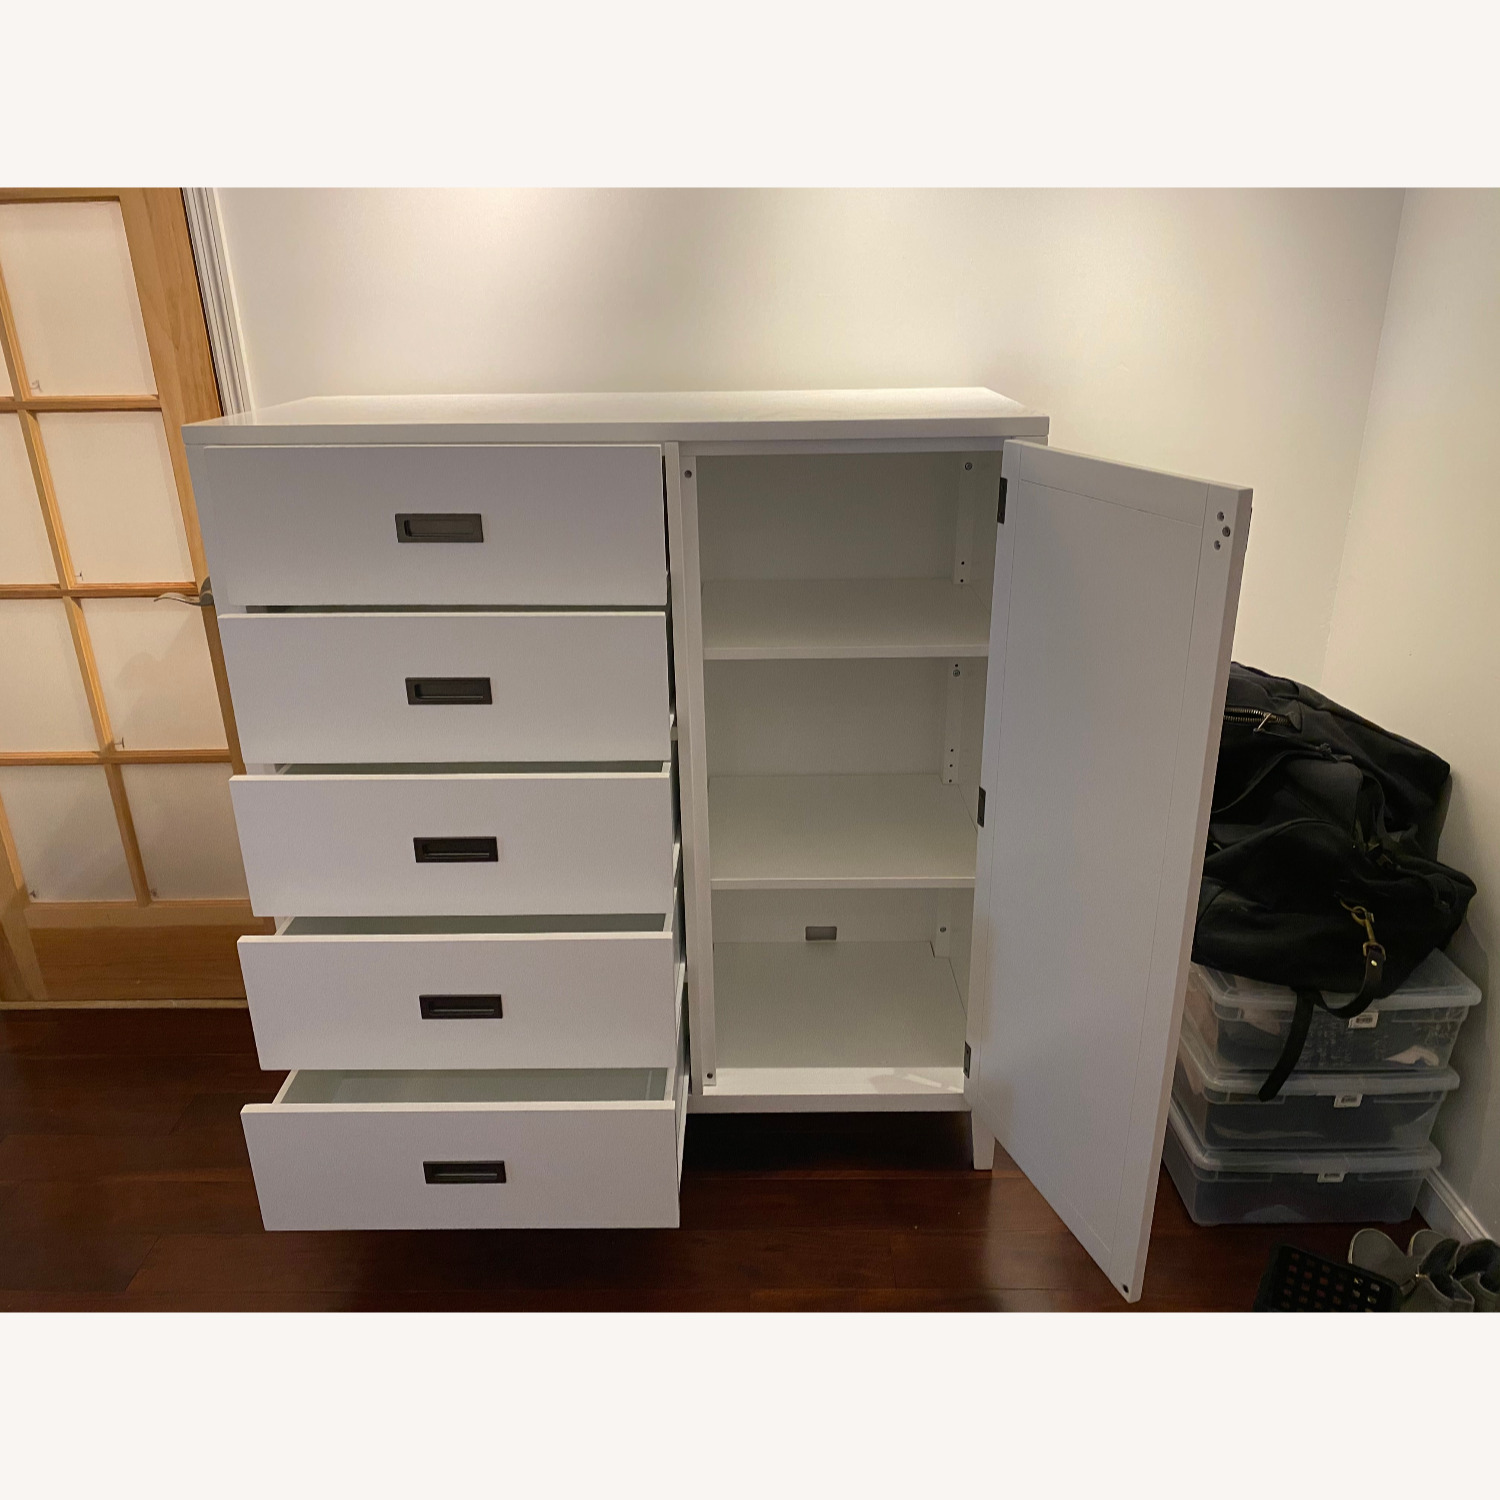 Crate and Barrel Arch Wardrobe / Dresser - image-3